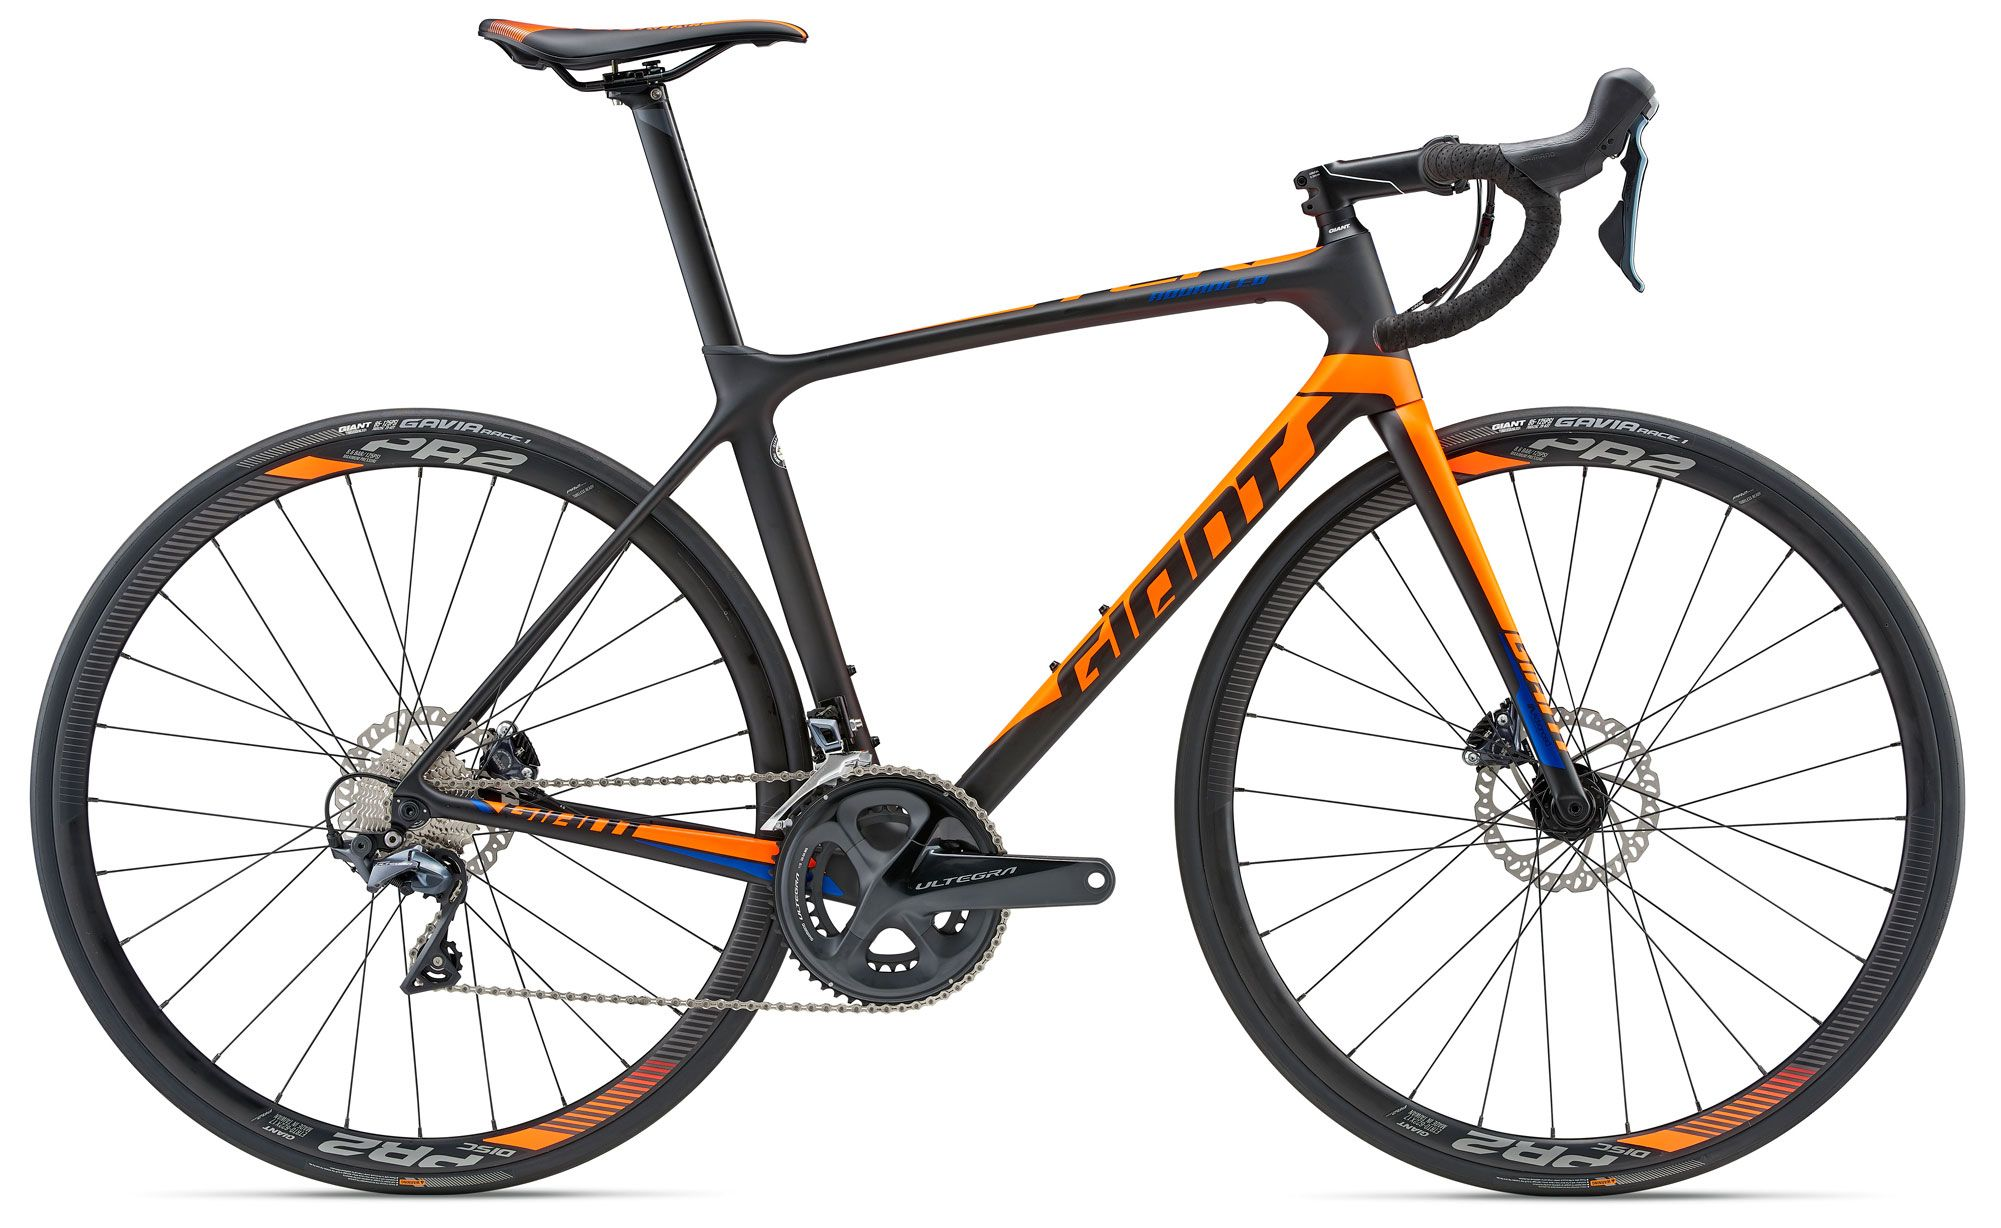 Велосипед Giant TCR Advanced 1 Disc 2018 велосипед giant xtc advanced 27 5 2 2014